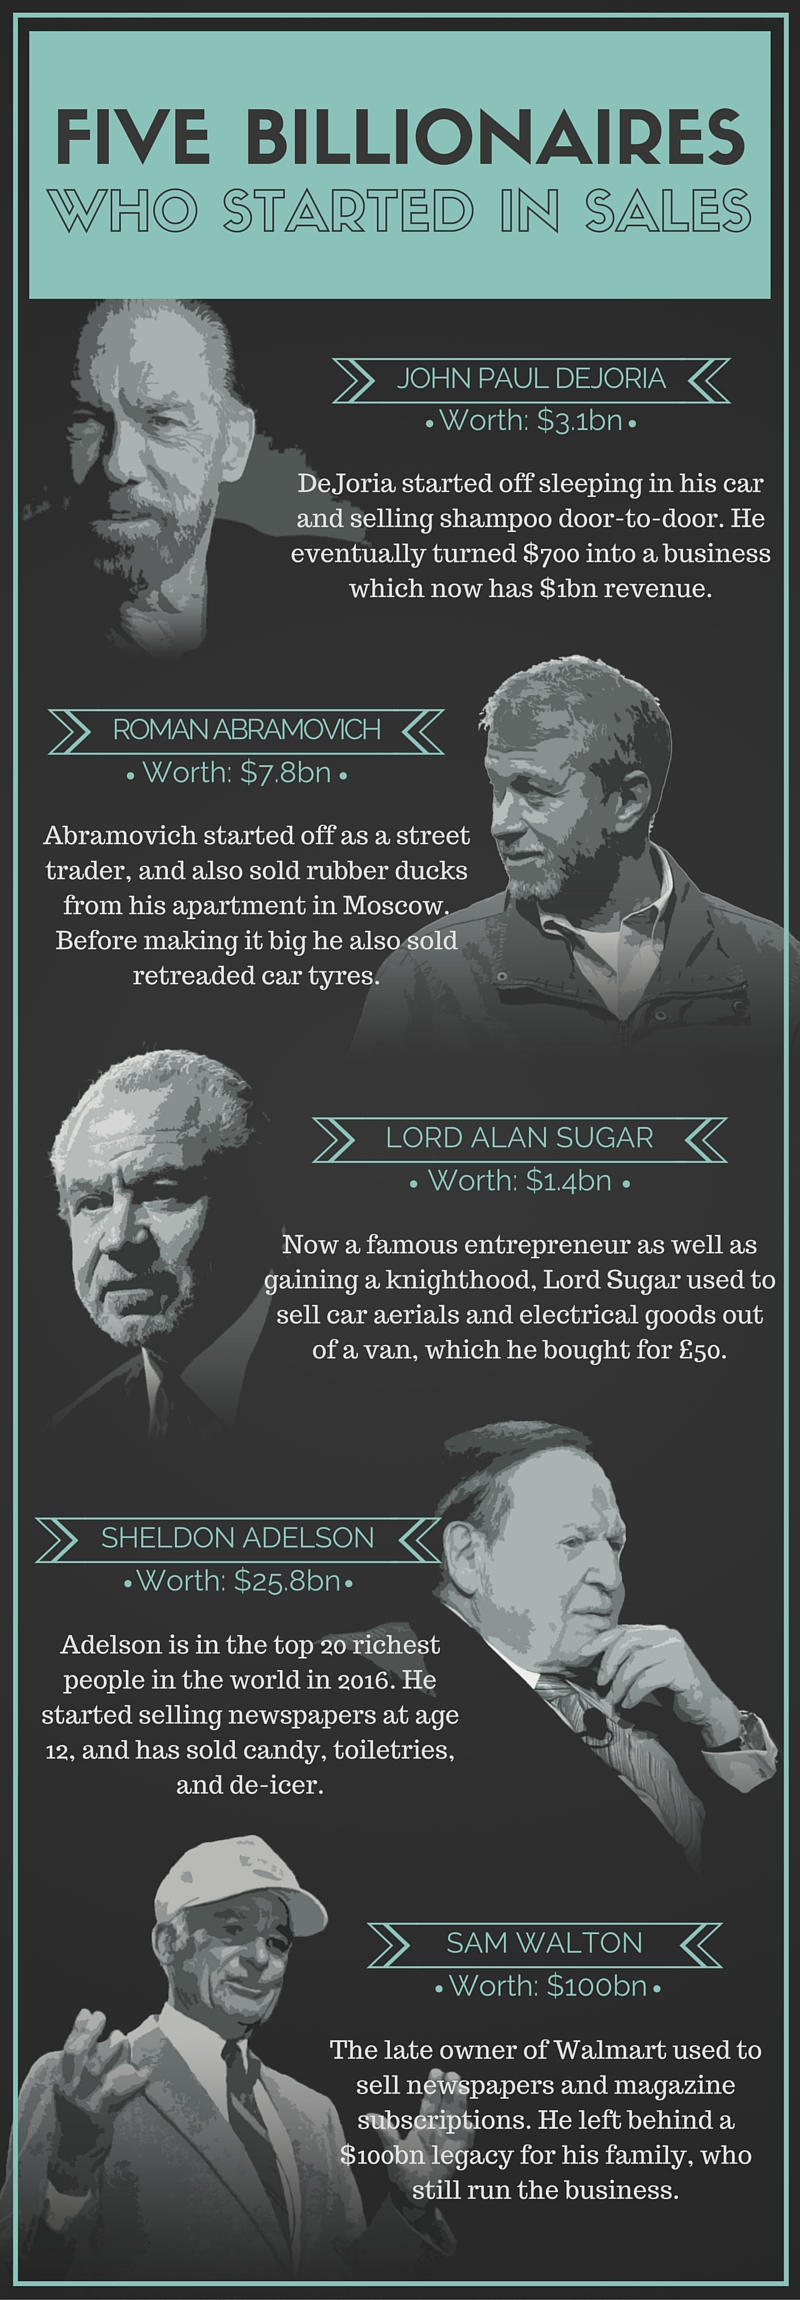 Five Billionaires who Started in Sales Infographic - Pan Atlantic